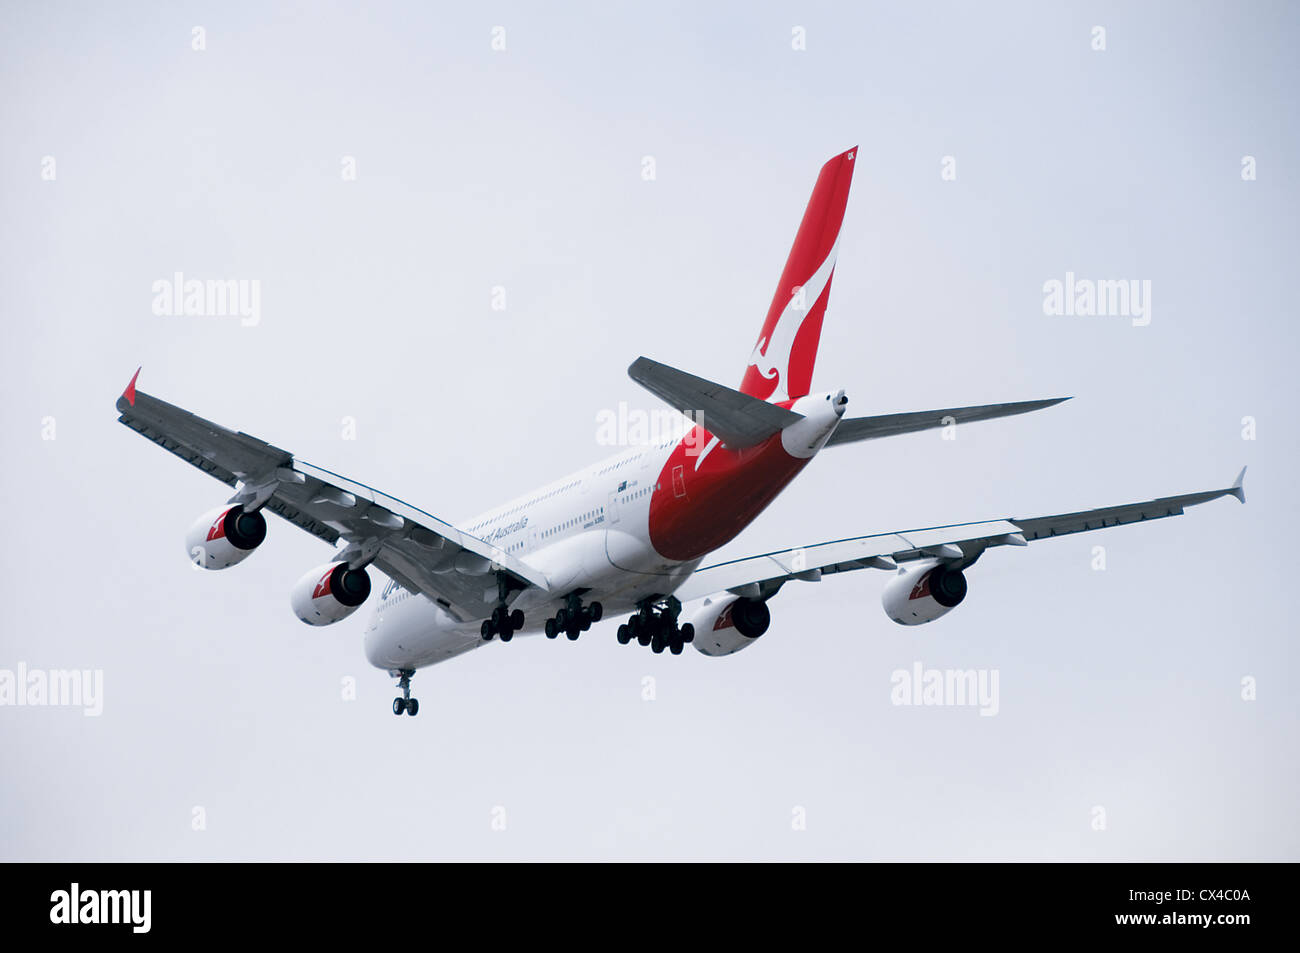 World's largest passenger jet landing at LAX in Los Angeles - Stock Image